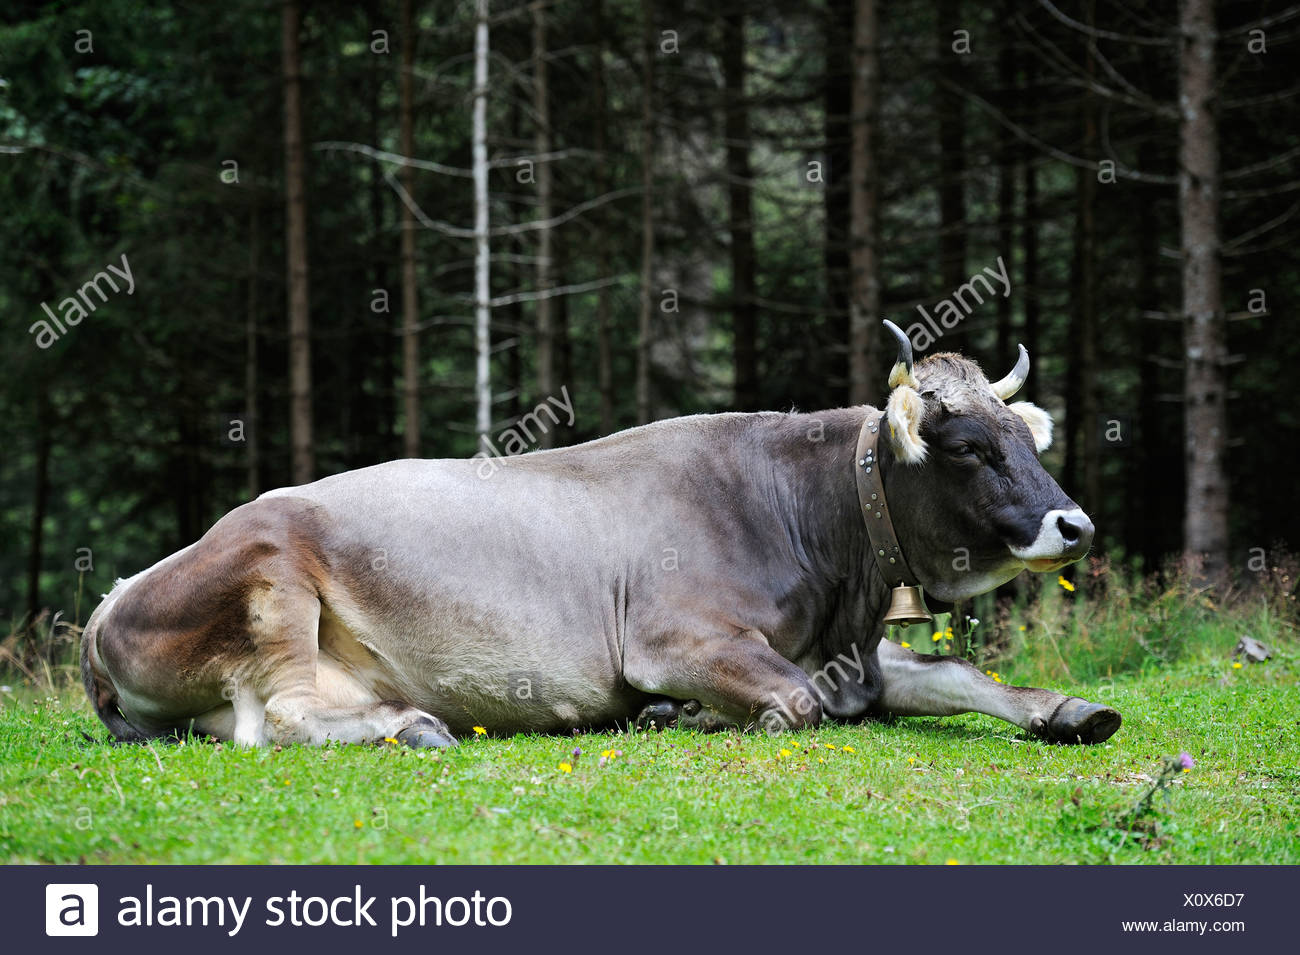 Tyrolese Grey Cattle (Grigio Alpina), Stubaital Valley, Tyrol, Austria,  Europe